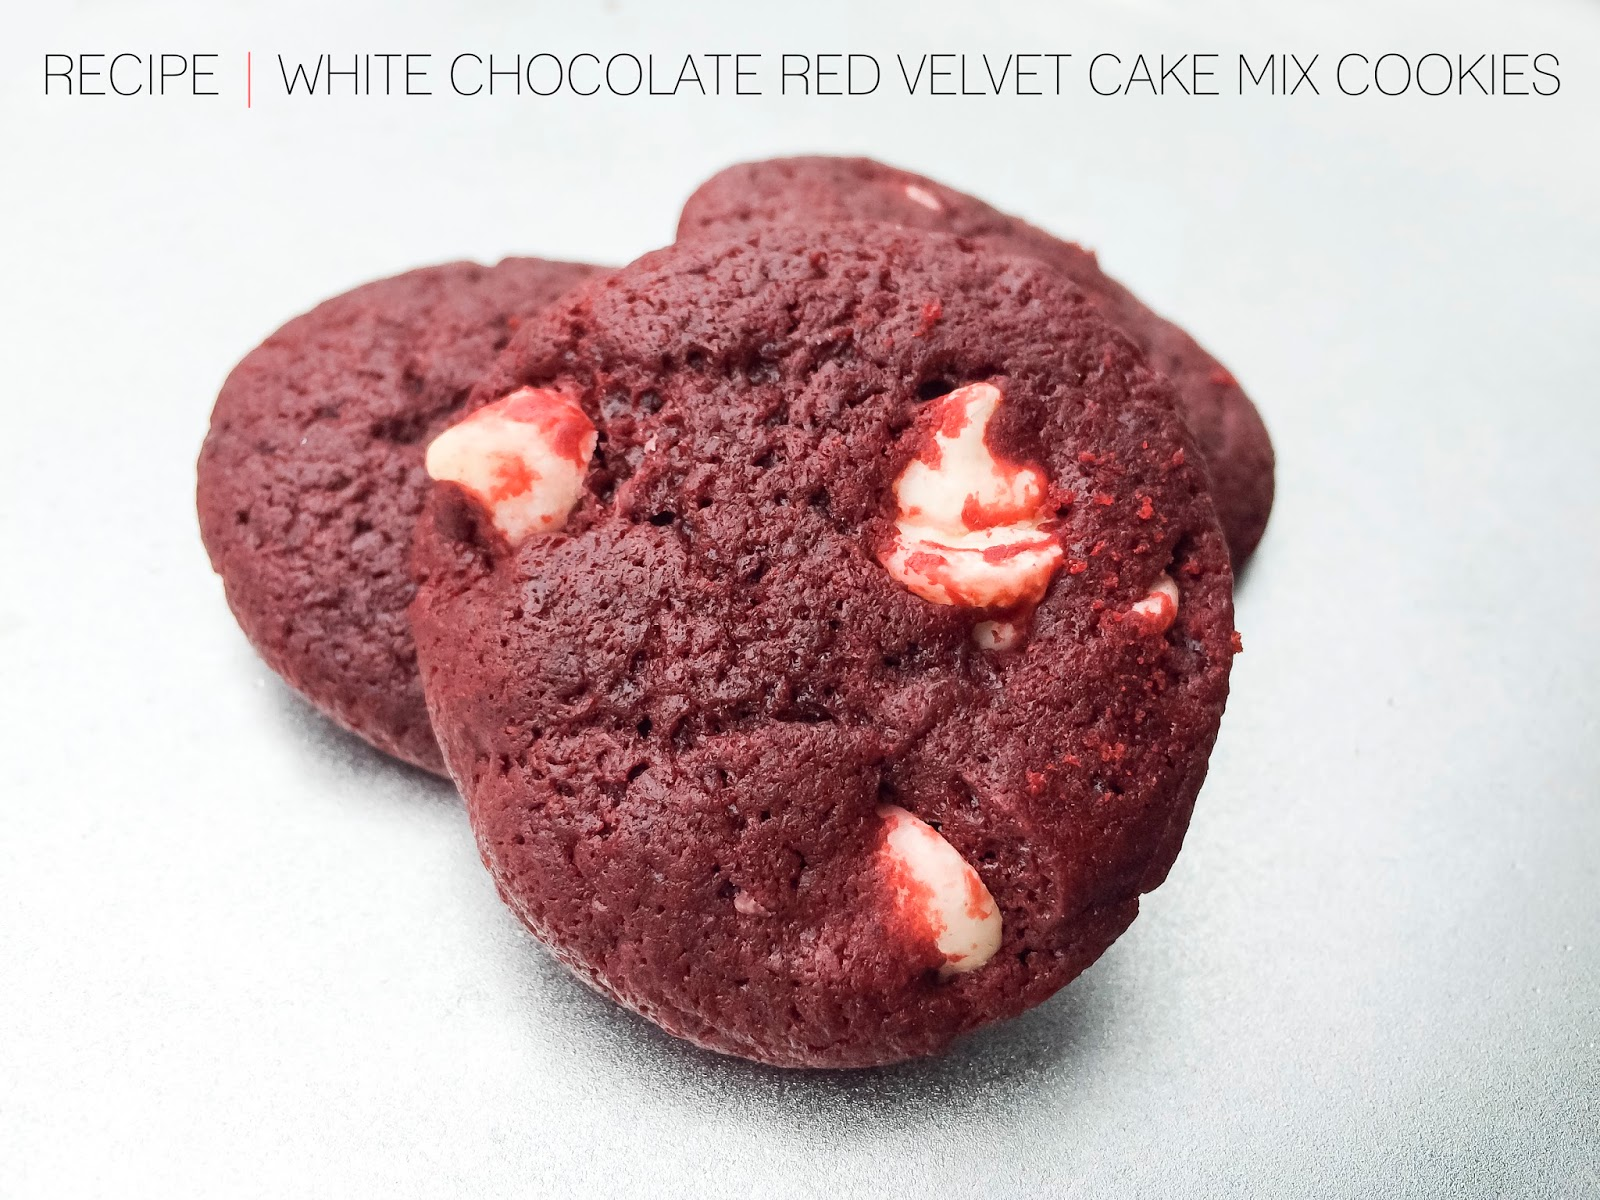 http://4.bp.blogspot.com/-mcHpAPIYVnE/VKTEg_7LkoI/AAAAAAAAD5w/7Gjt1fjTwzI/s1600/cafe_craftea_recipe_white_chocolate_red_velvet_cake_mix_cookies_title.jpg